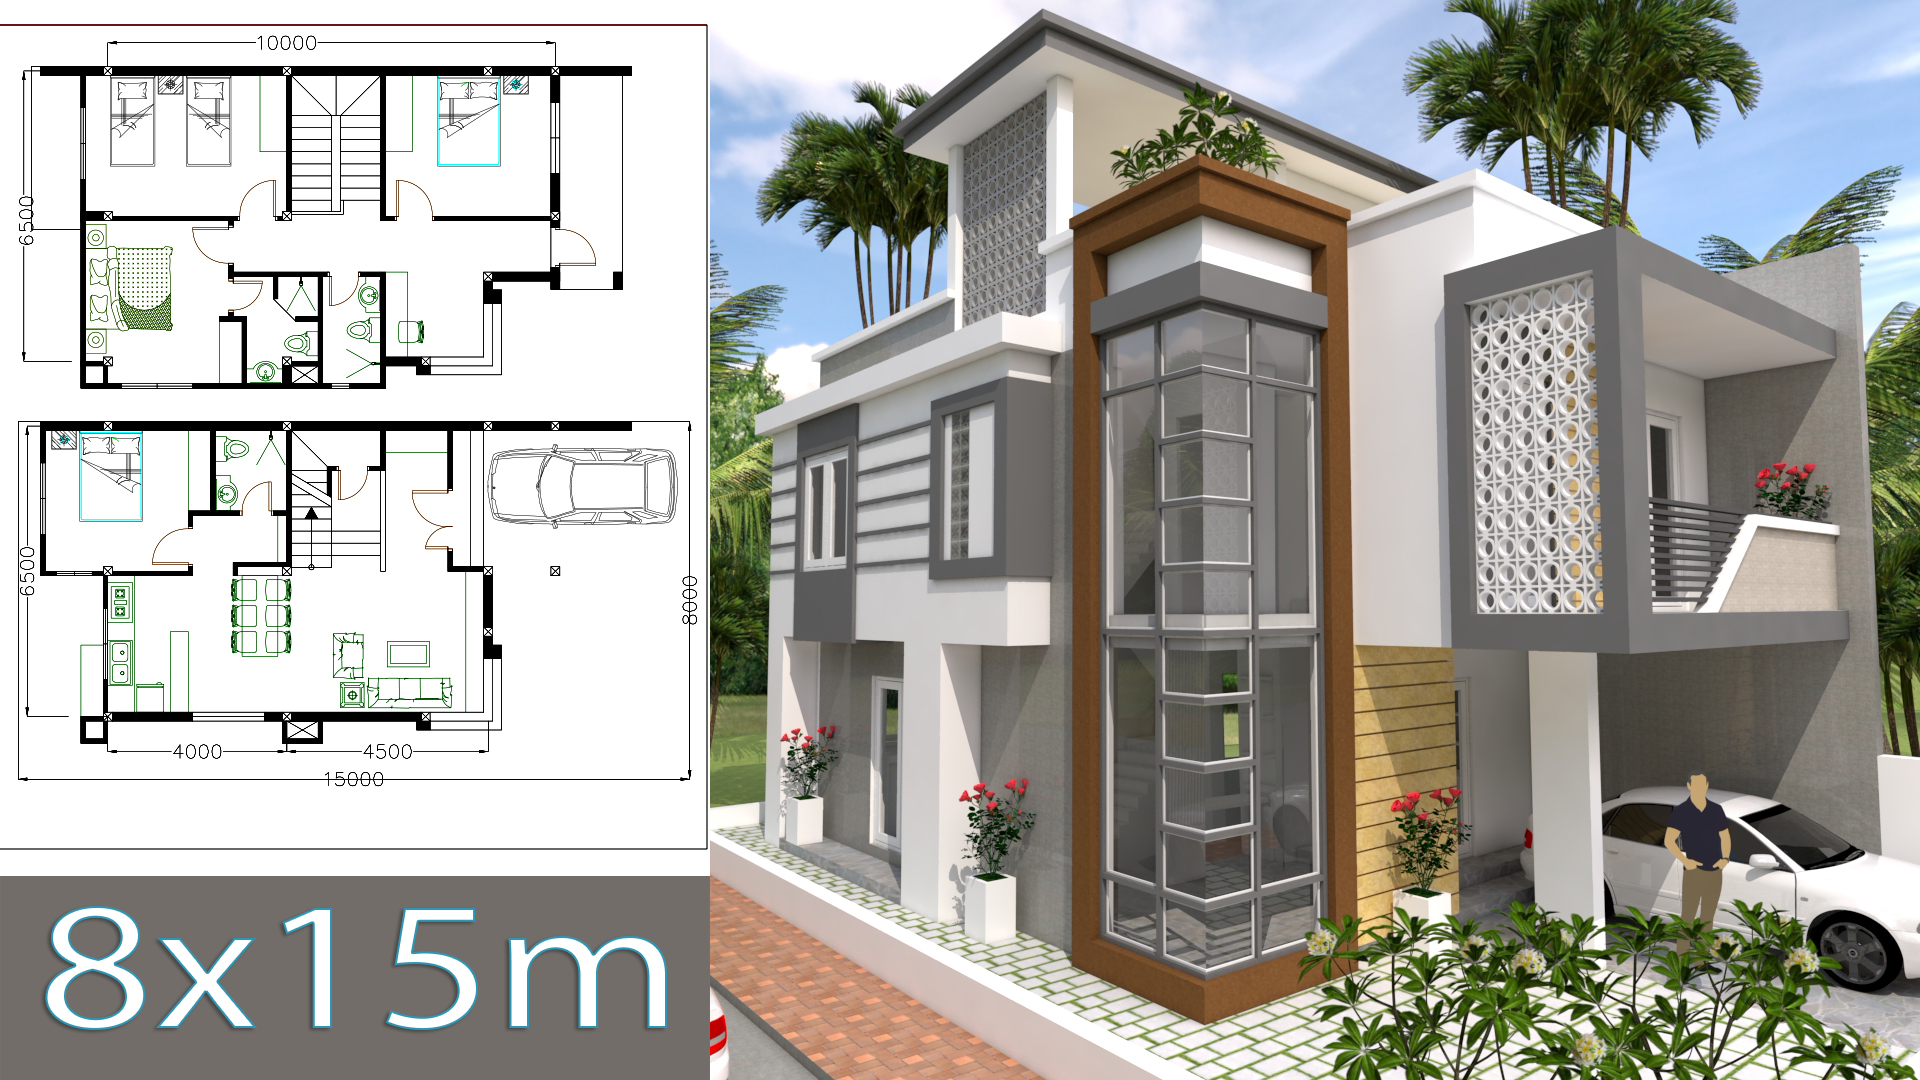 Home design plan 8x15m with 4 bedrooms